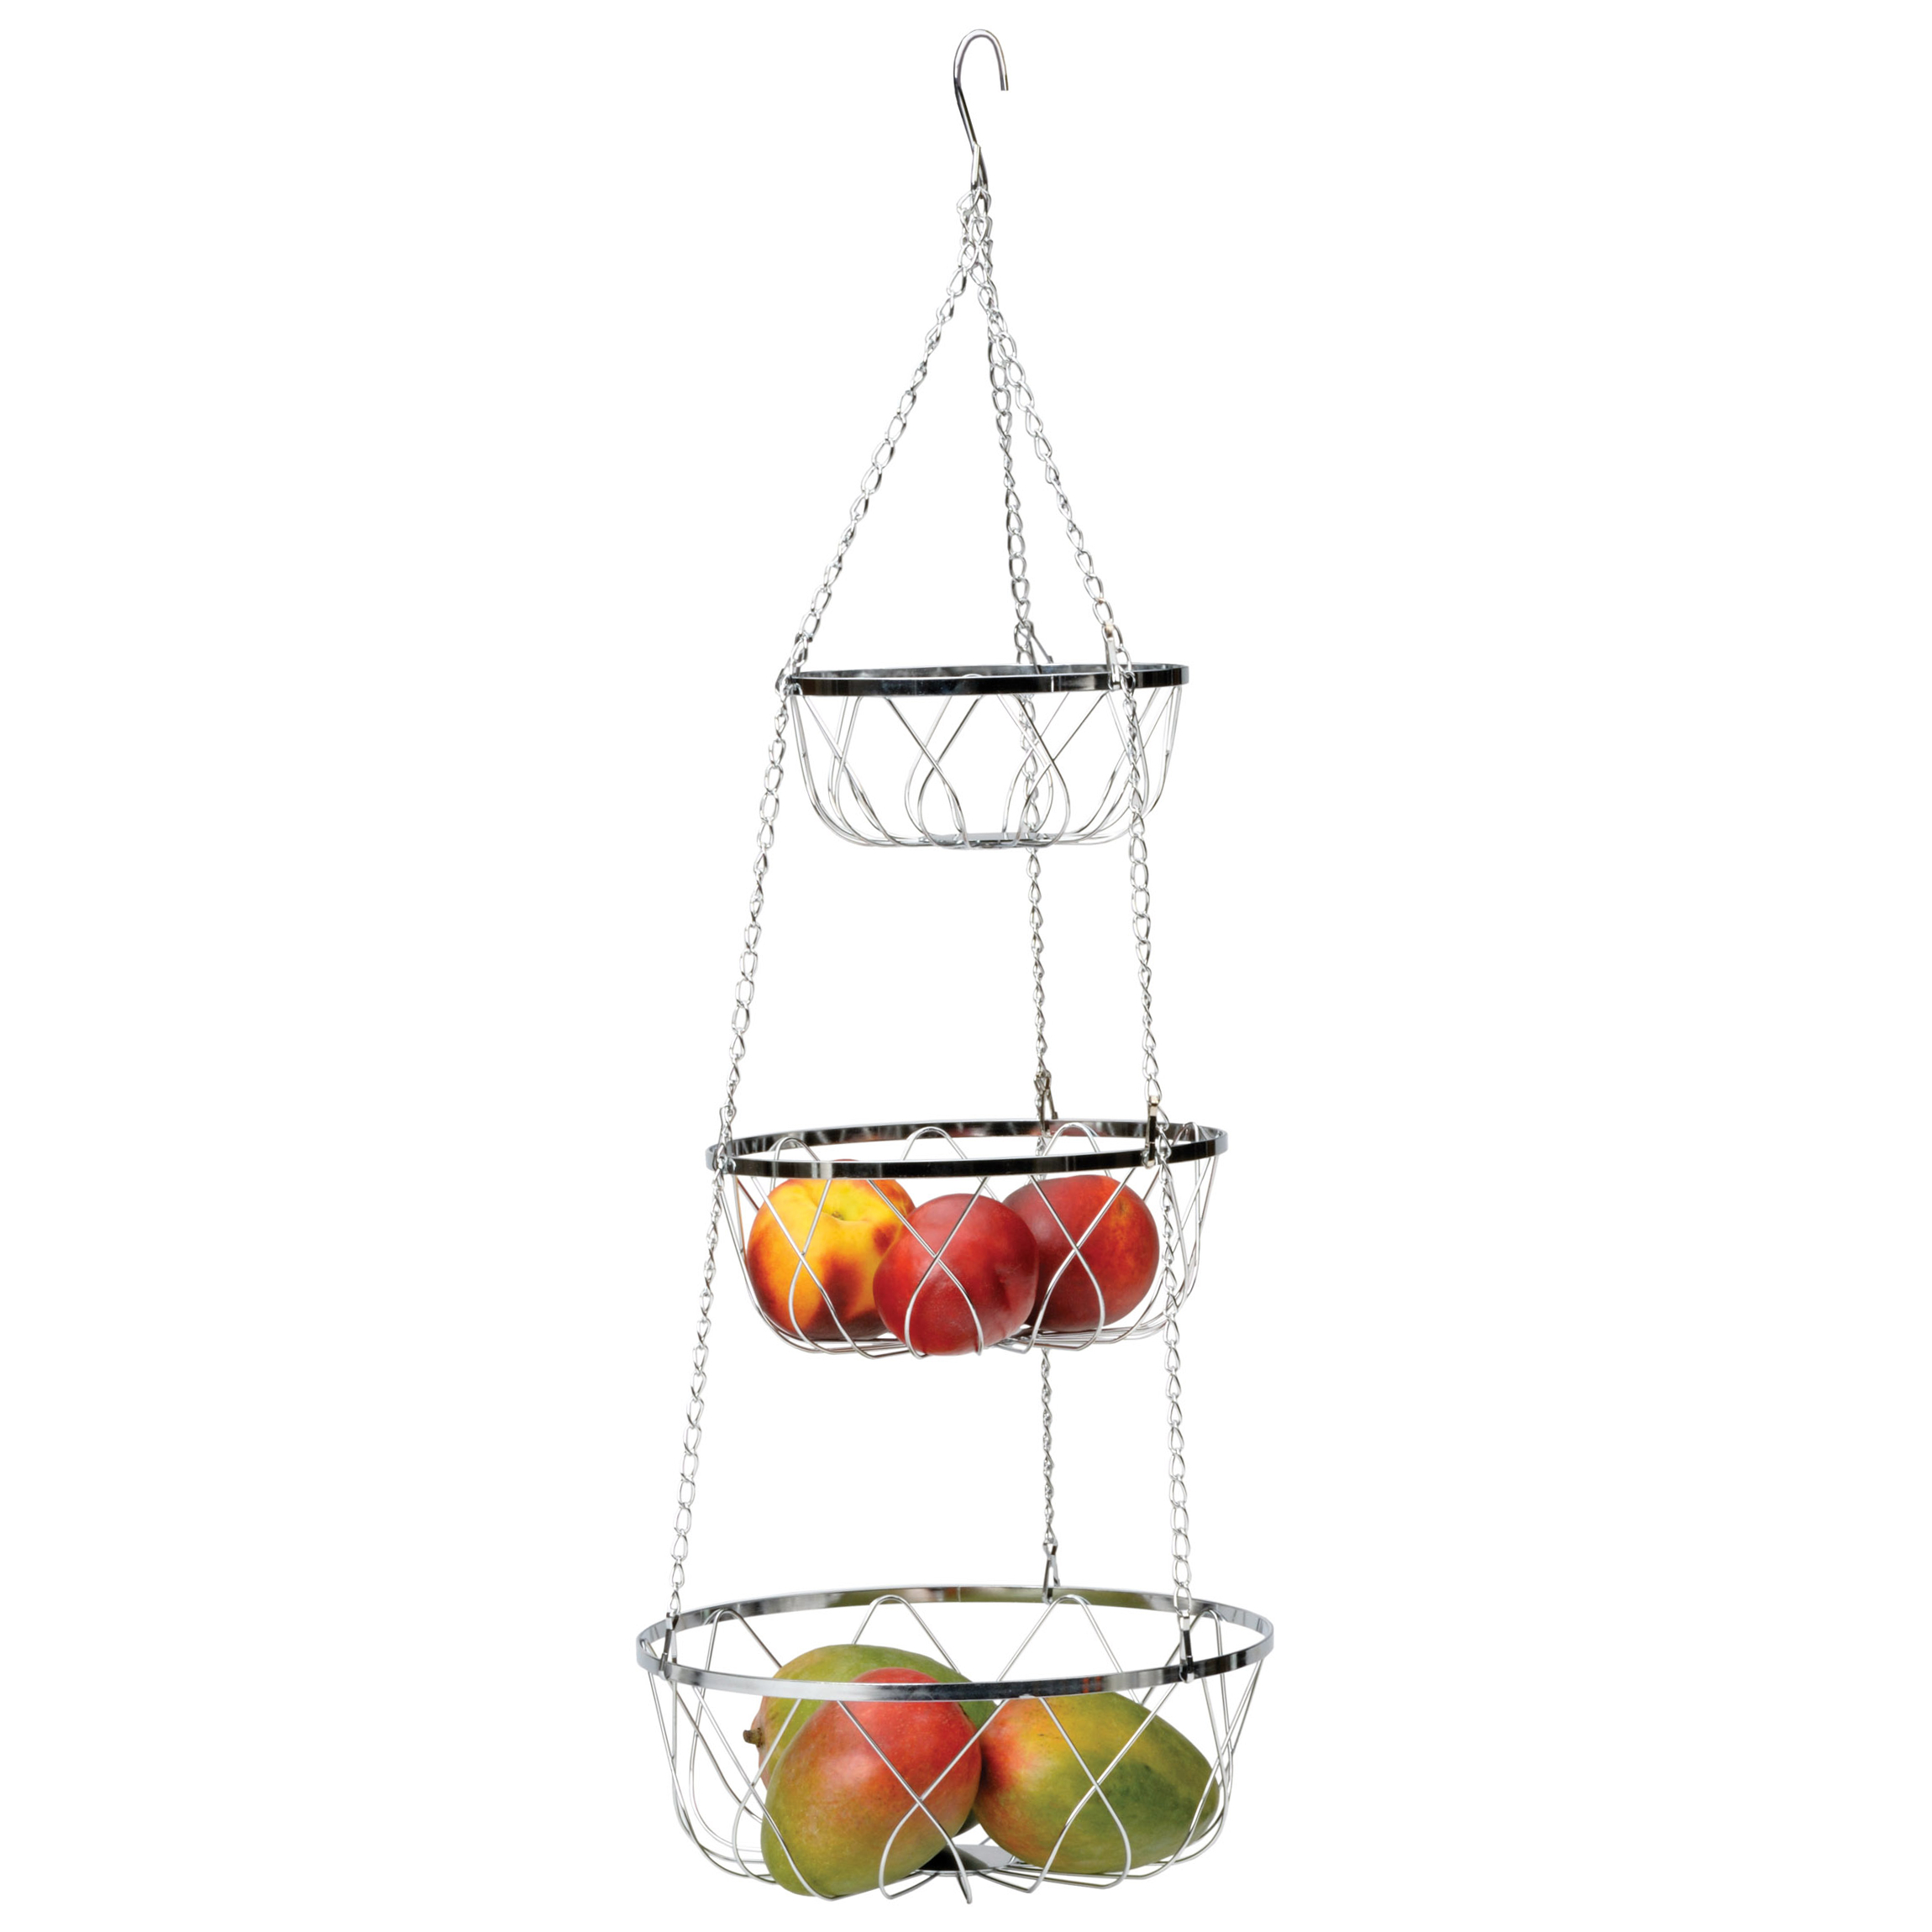 RSVP 3-Tier Hanging Fancy Chrome Wire Fruit Basket